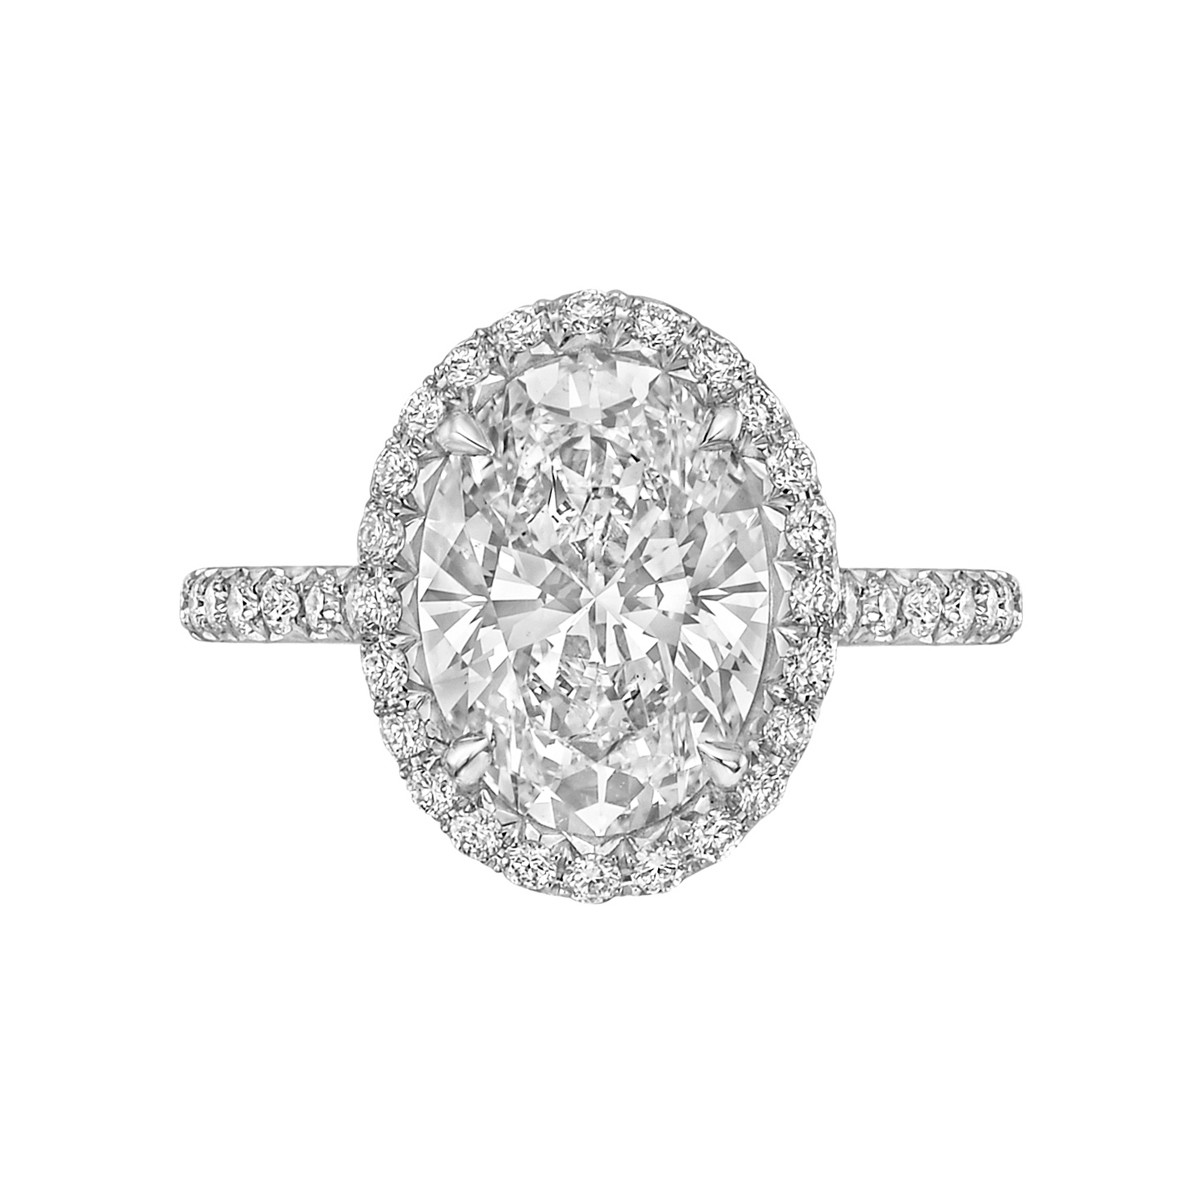 "3.02 Carat Oval Brilliant-Cut Diamond ""Oriana"" Ring"